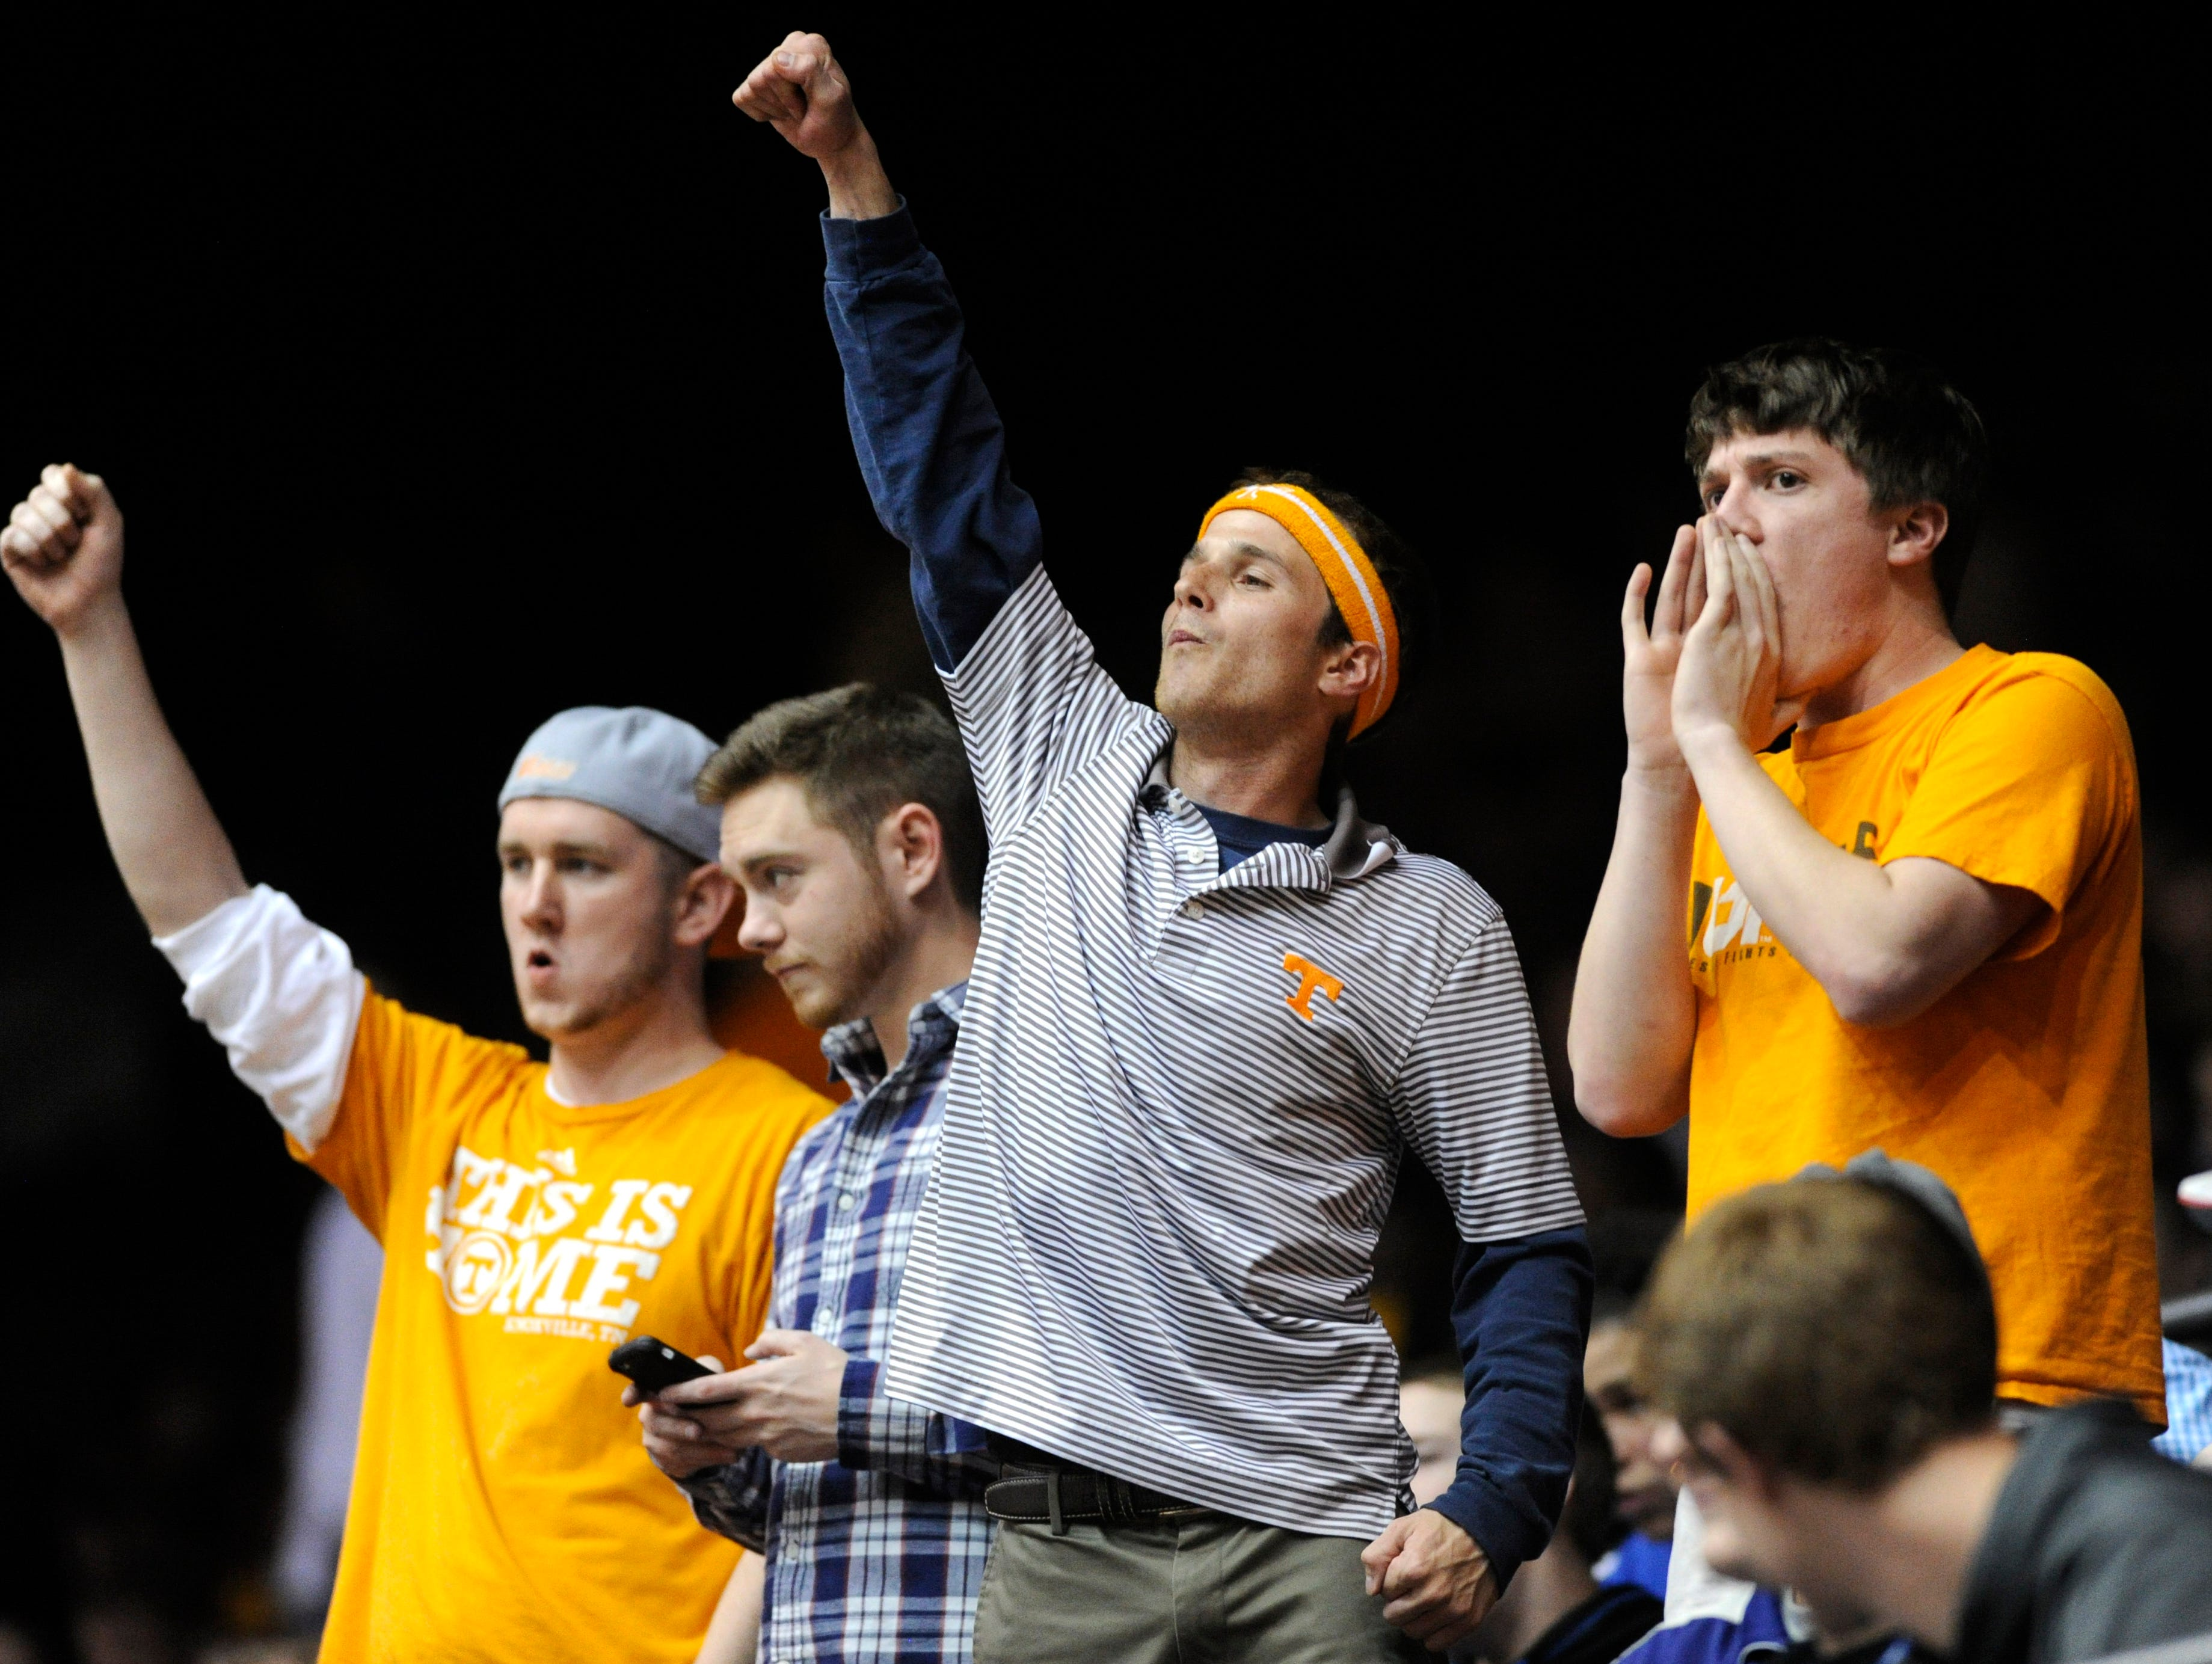 Tennessee fans cheer during the second half of an NCAA tournament First Four play-in game at the University of Dayton Arena in Dayton, Ohio on Wednesday, March 19, 2014. Tennessee won 78-65 in overtime.